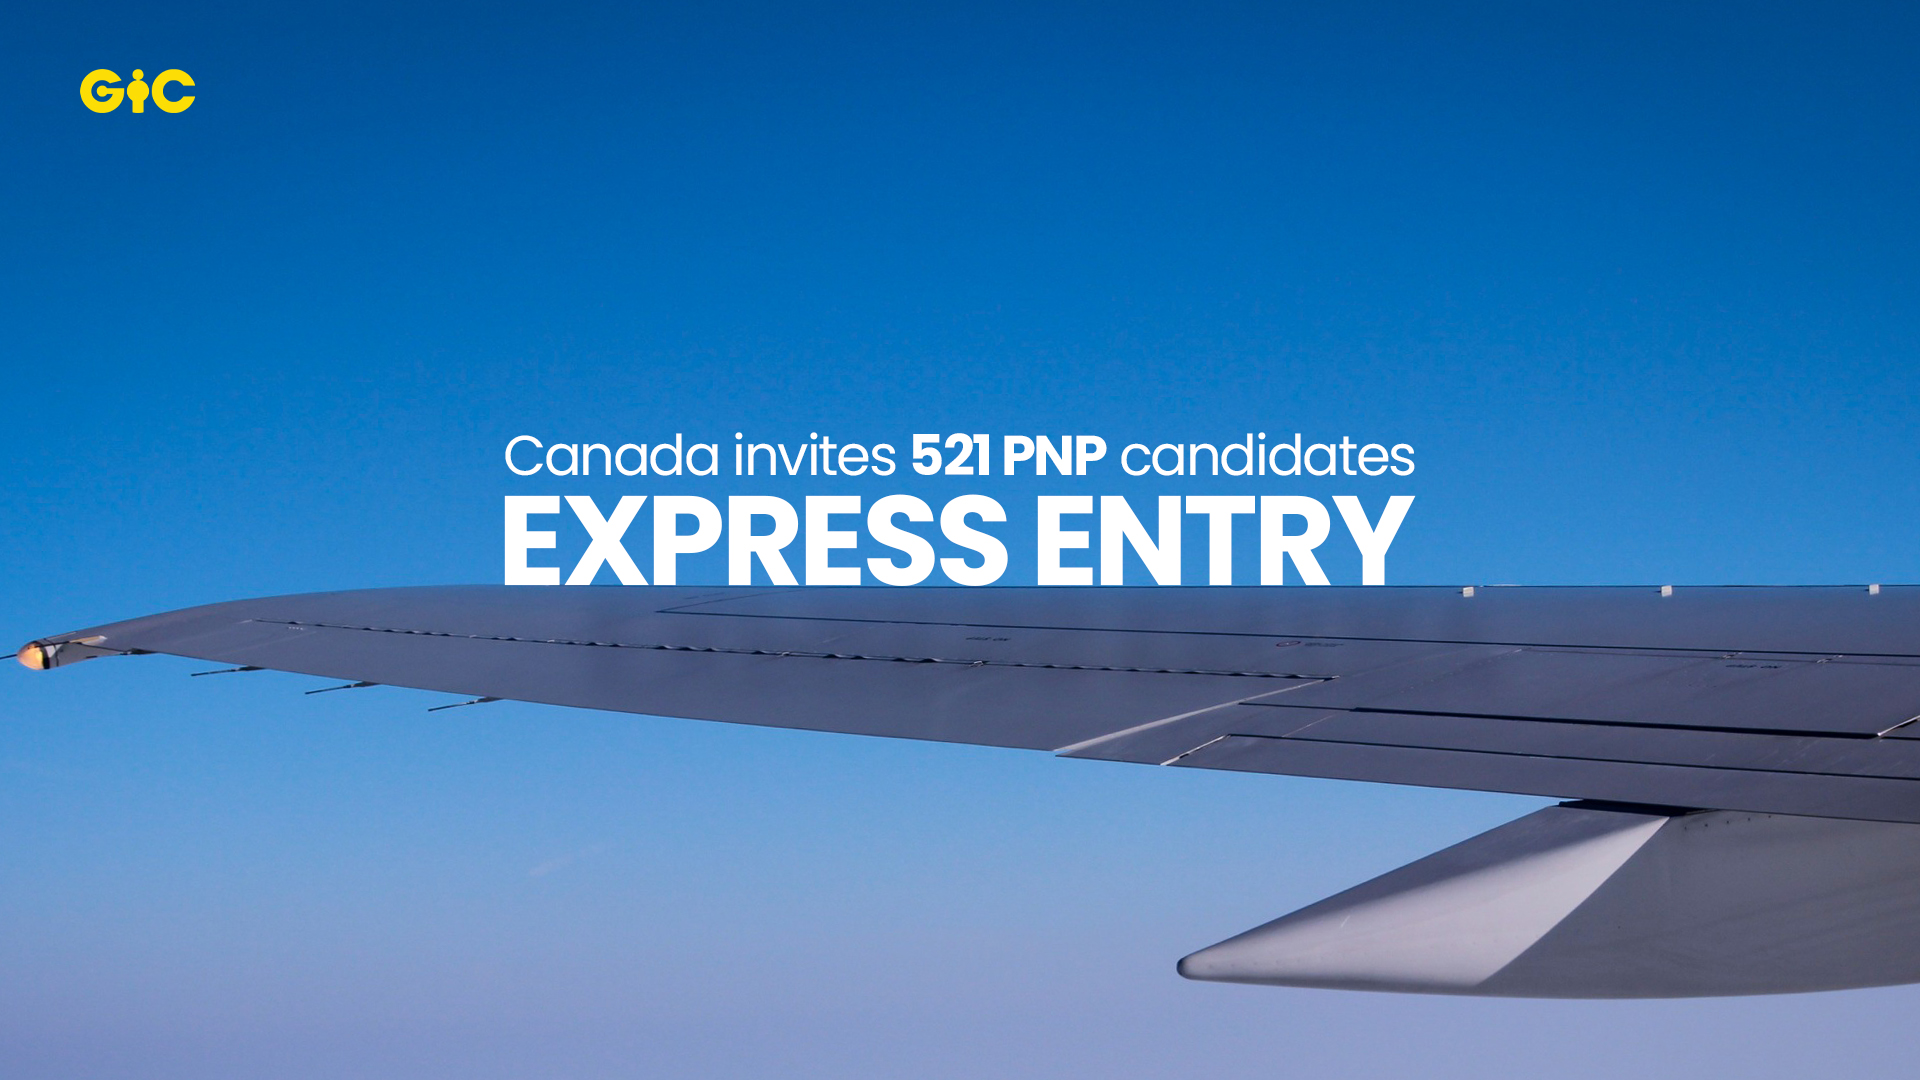 Express Entry: Canada invites 521 PNP candidates